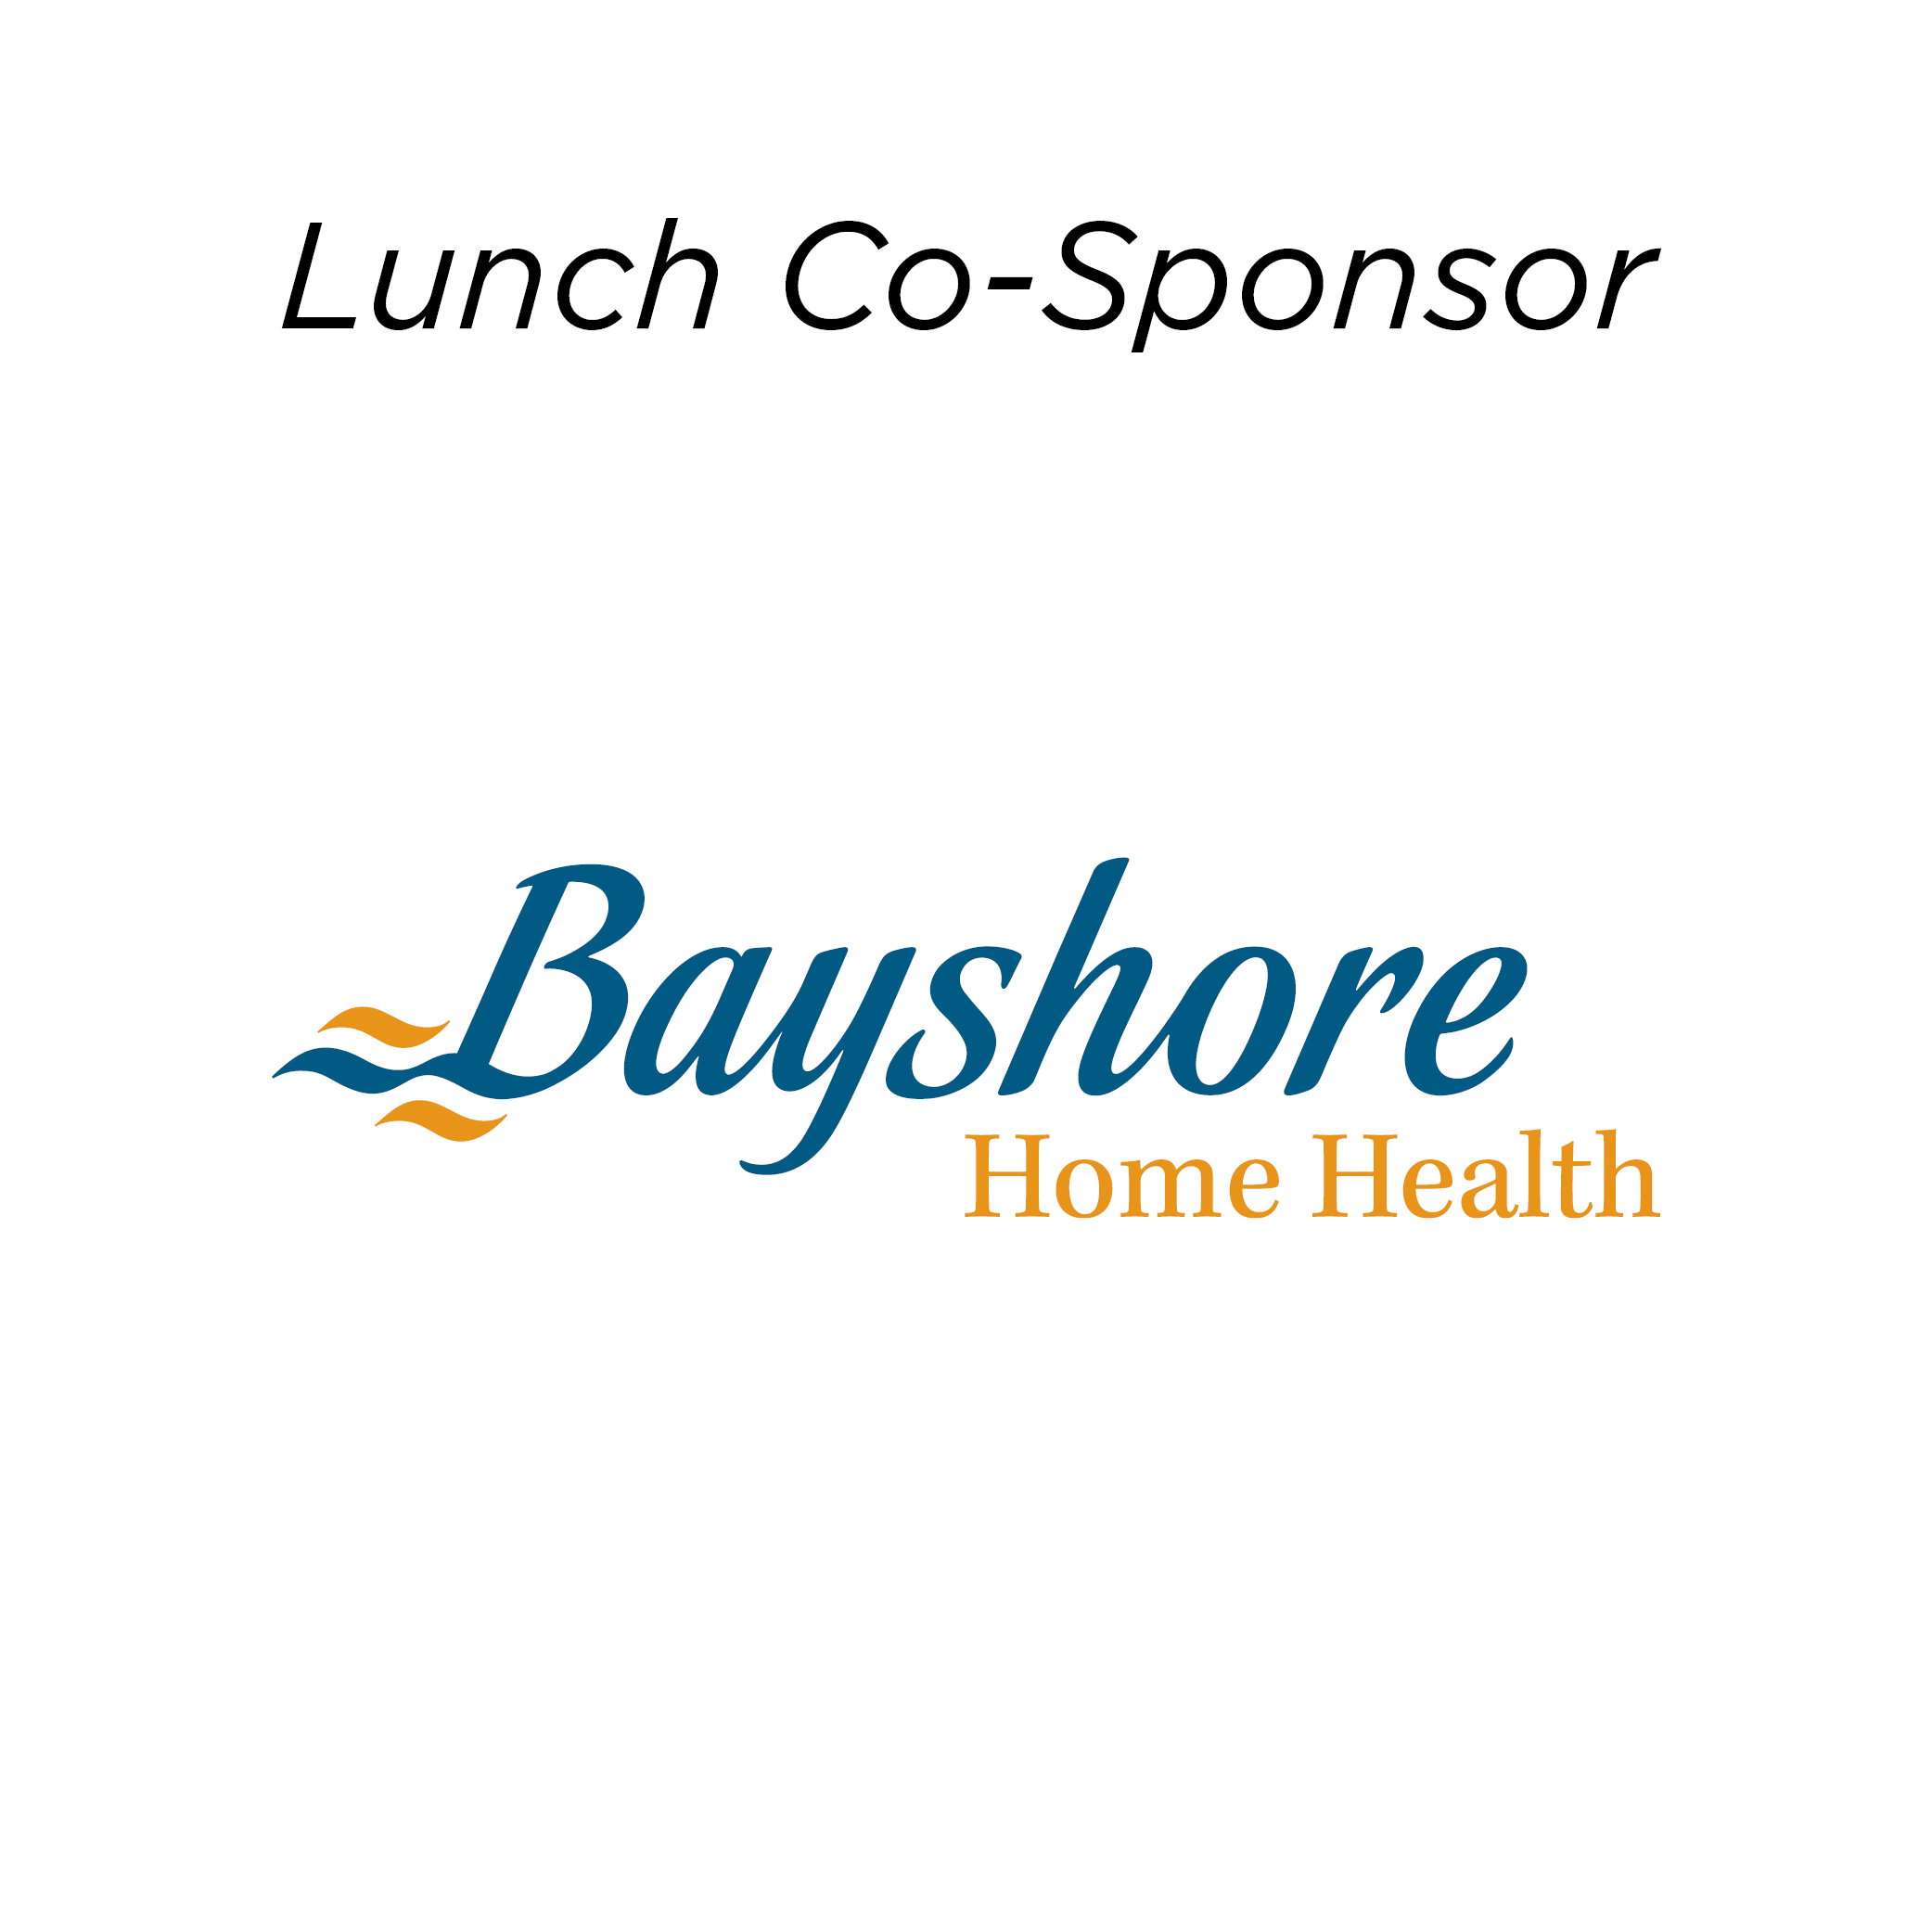 Bayshore Home Health - Lunch Sponsor